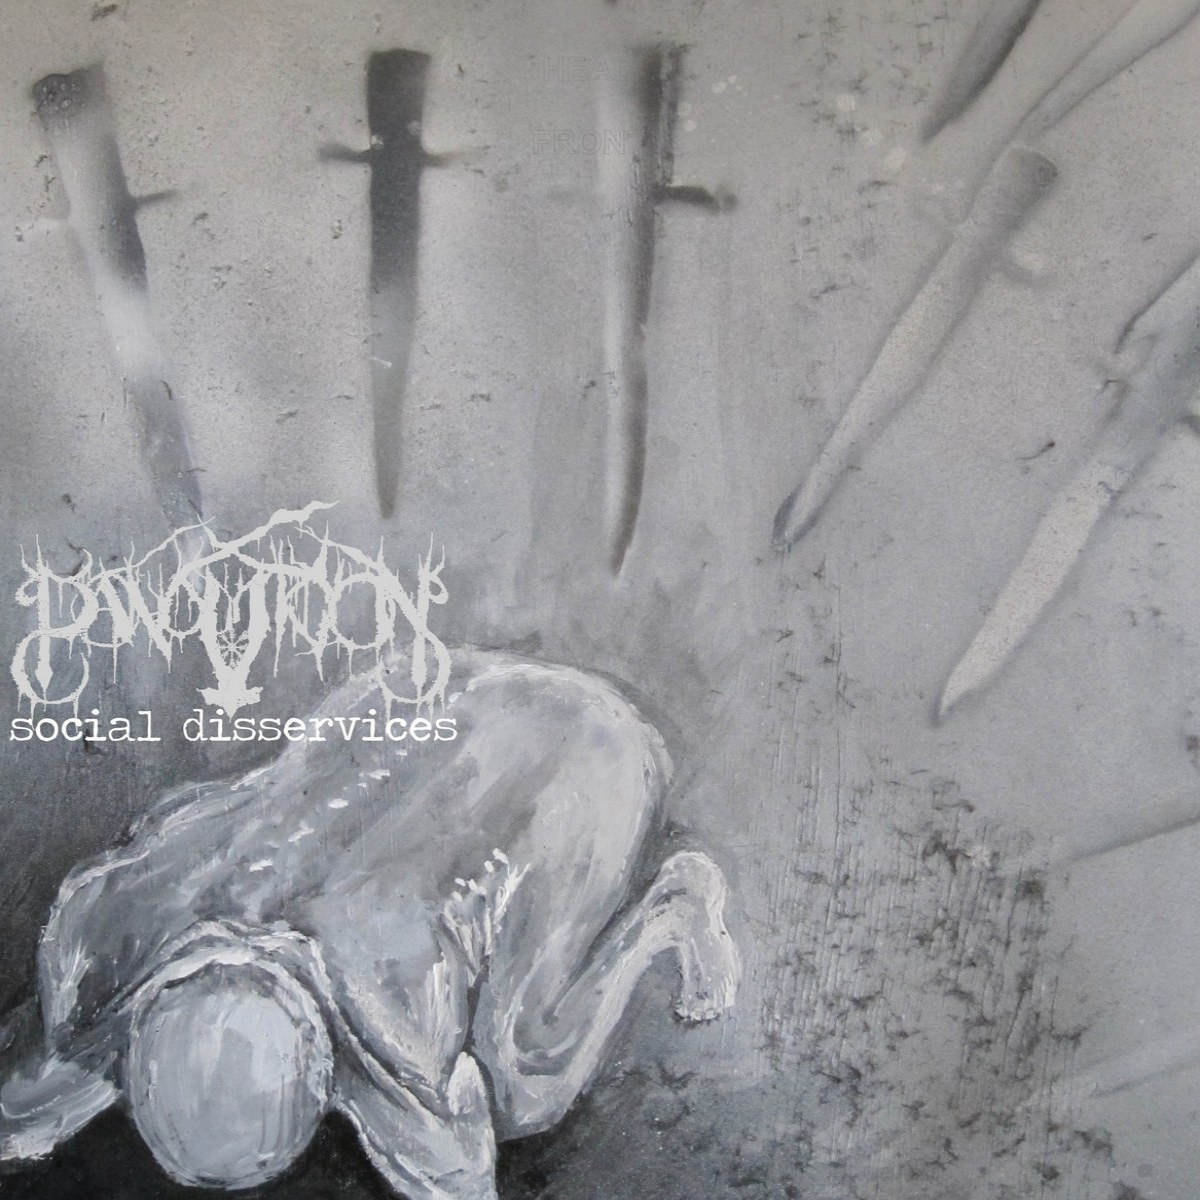 Review for Panopticon - Social Disservices